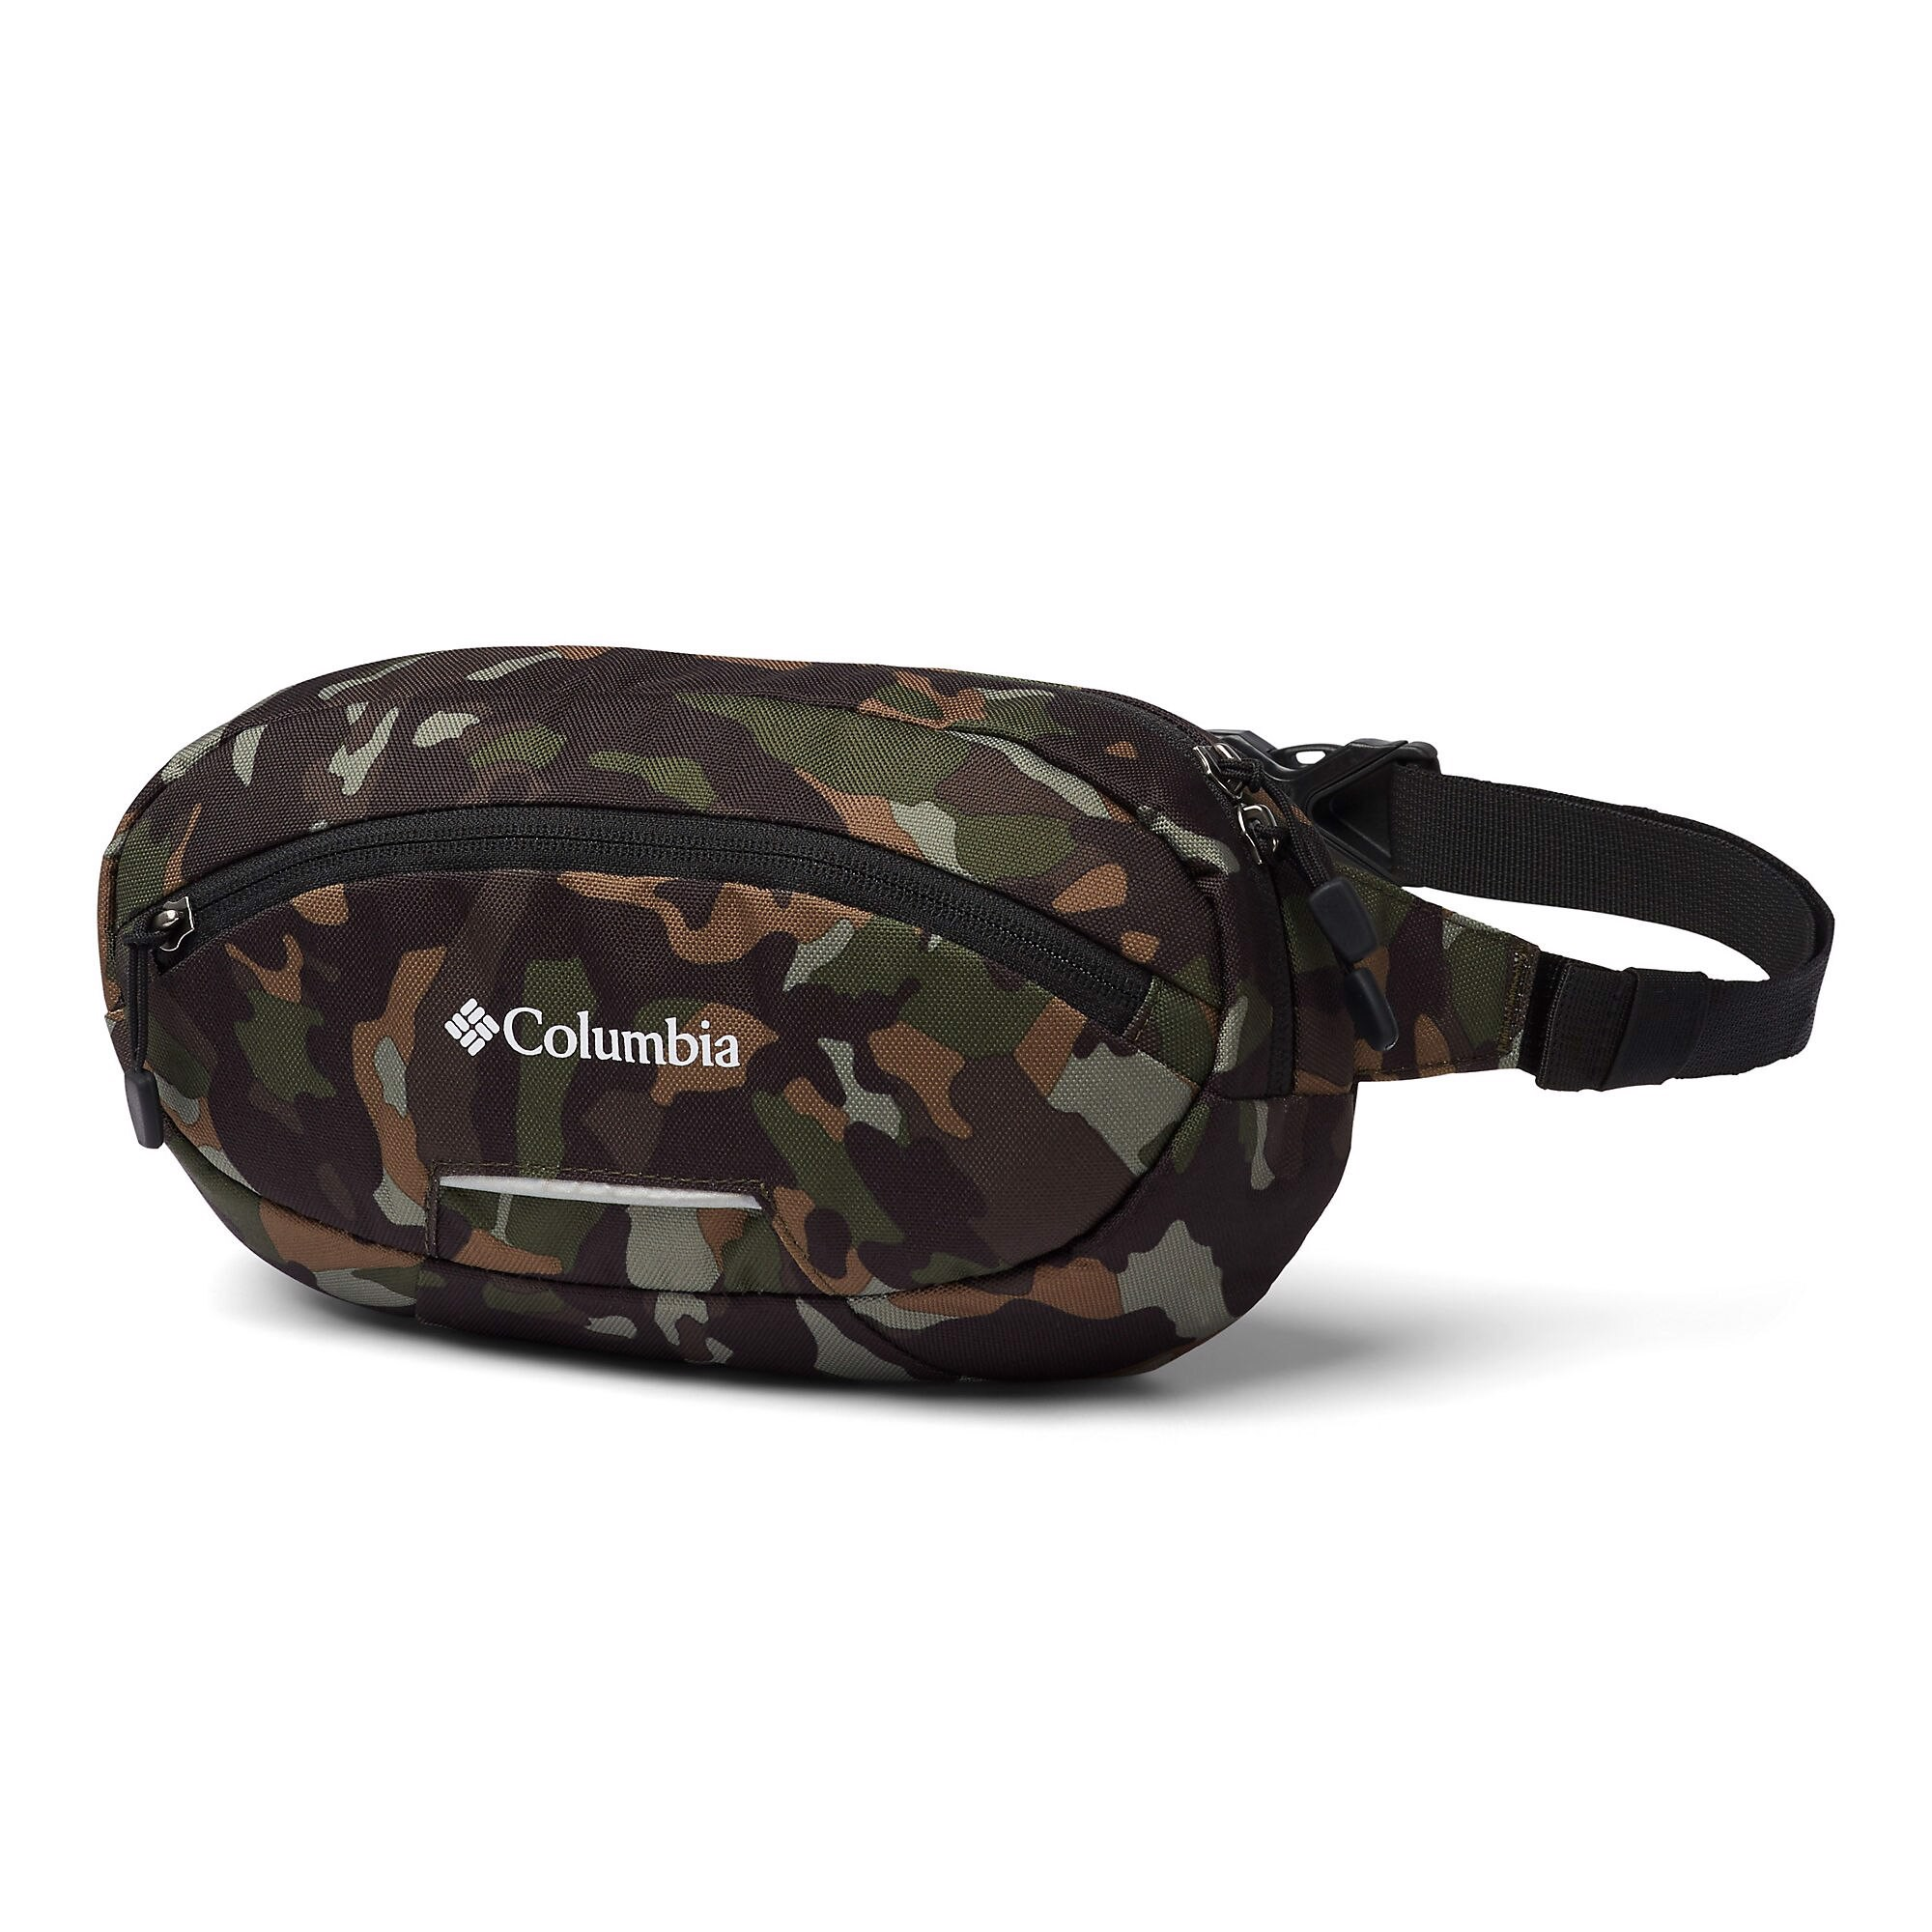 Columbia Bell Creek Waist Pack 'Camo'